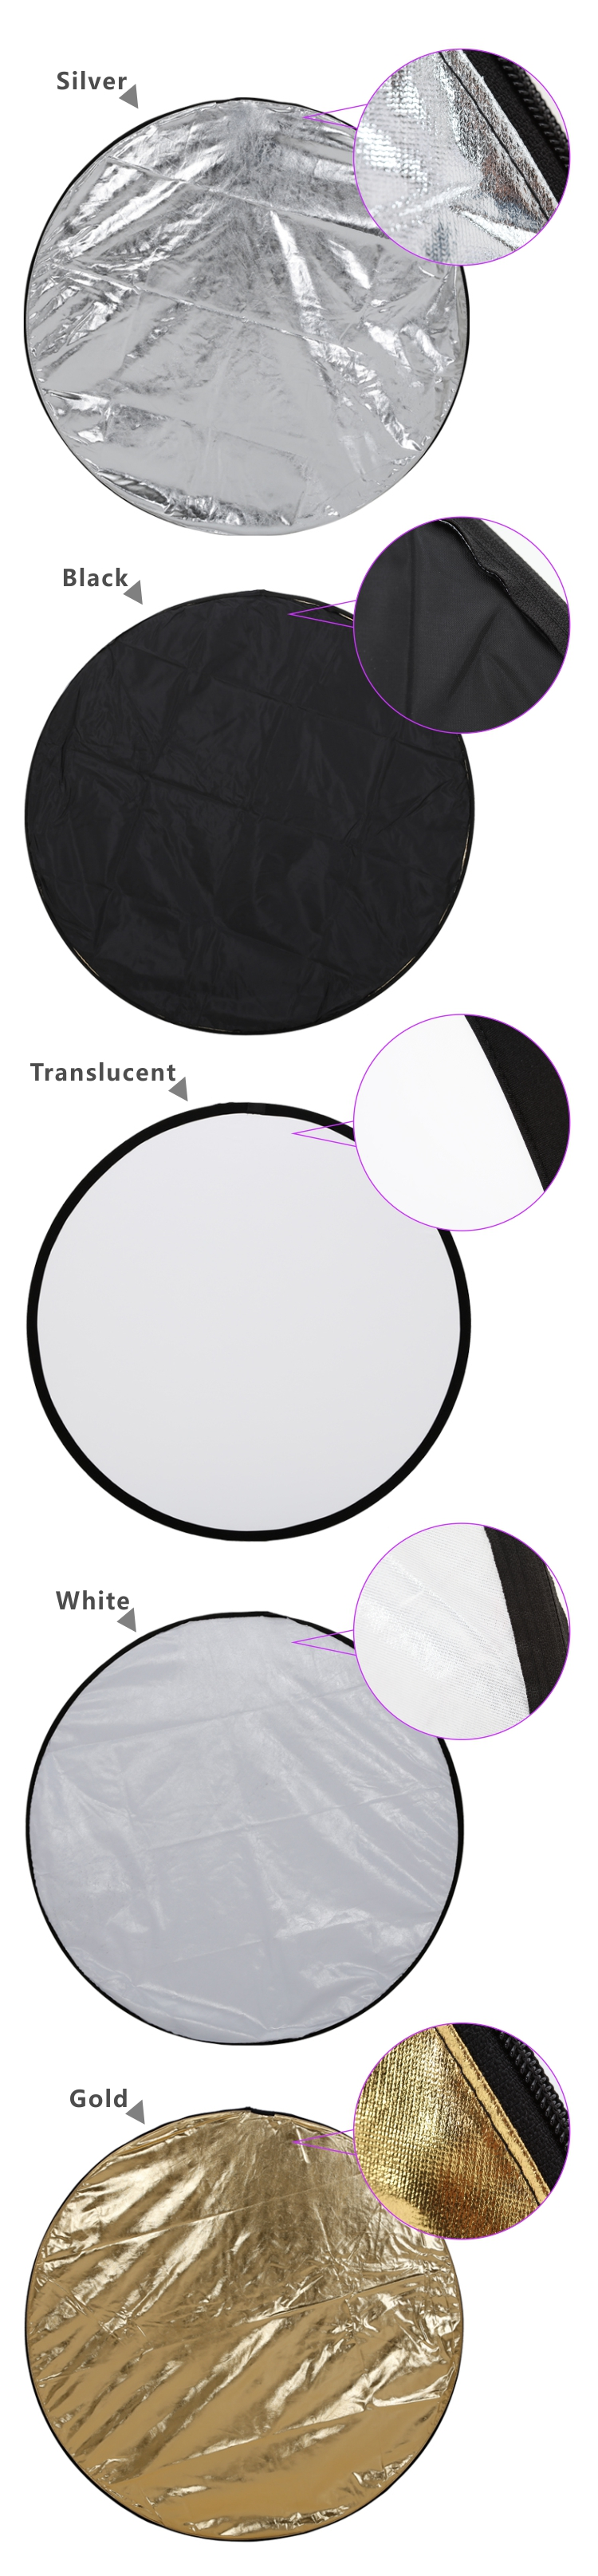 Camera reflector CRK-80 5 in 1 Portable Collapsible Light Round Reflector Studio Photo Photography Accessories with Carrying Bag 20